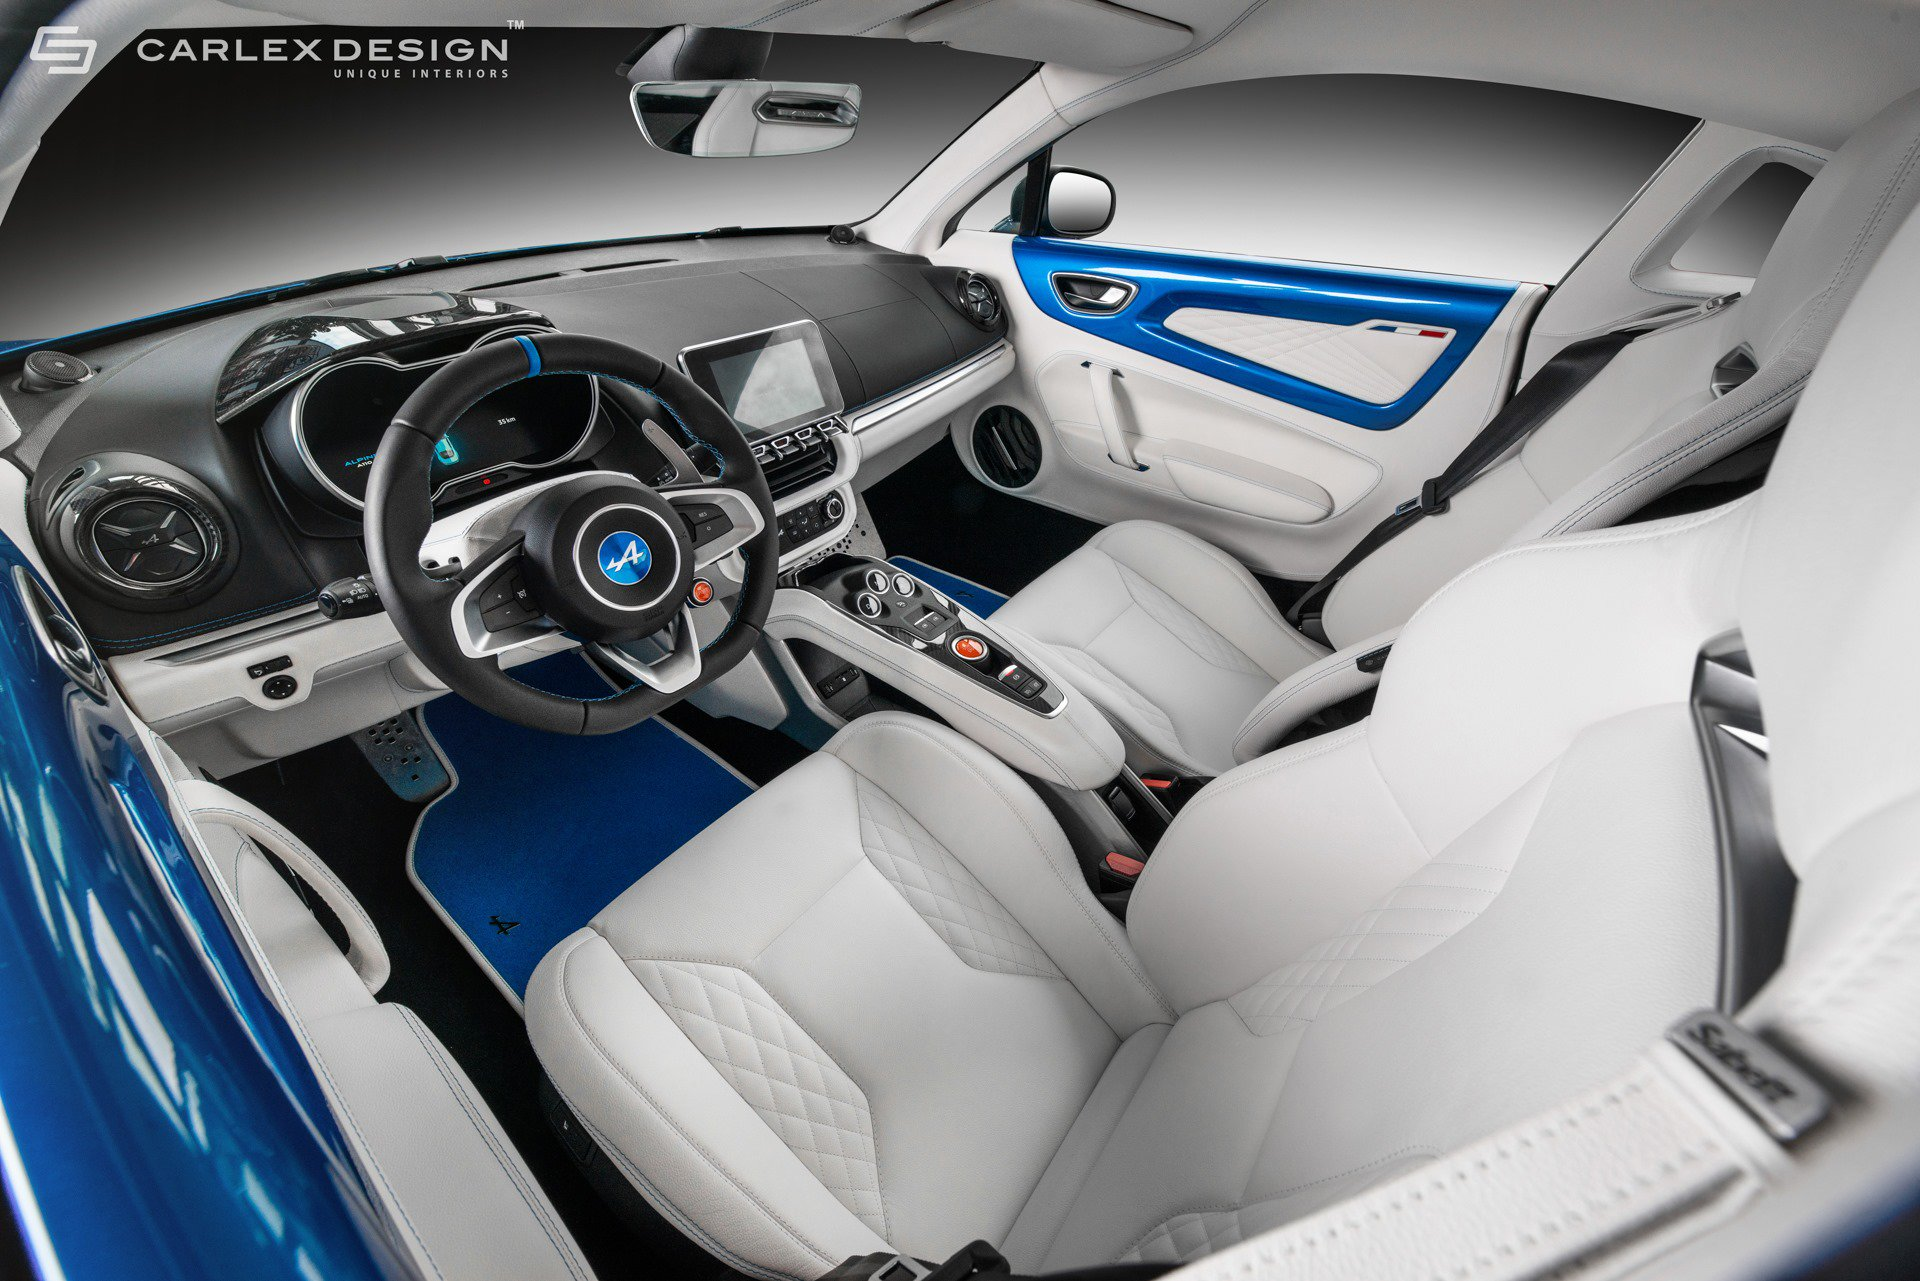 12f12164-carlex-alpine-a110-interior-custom-6